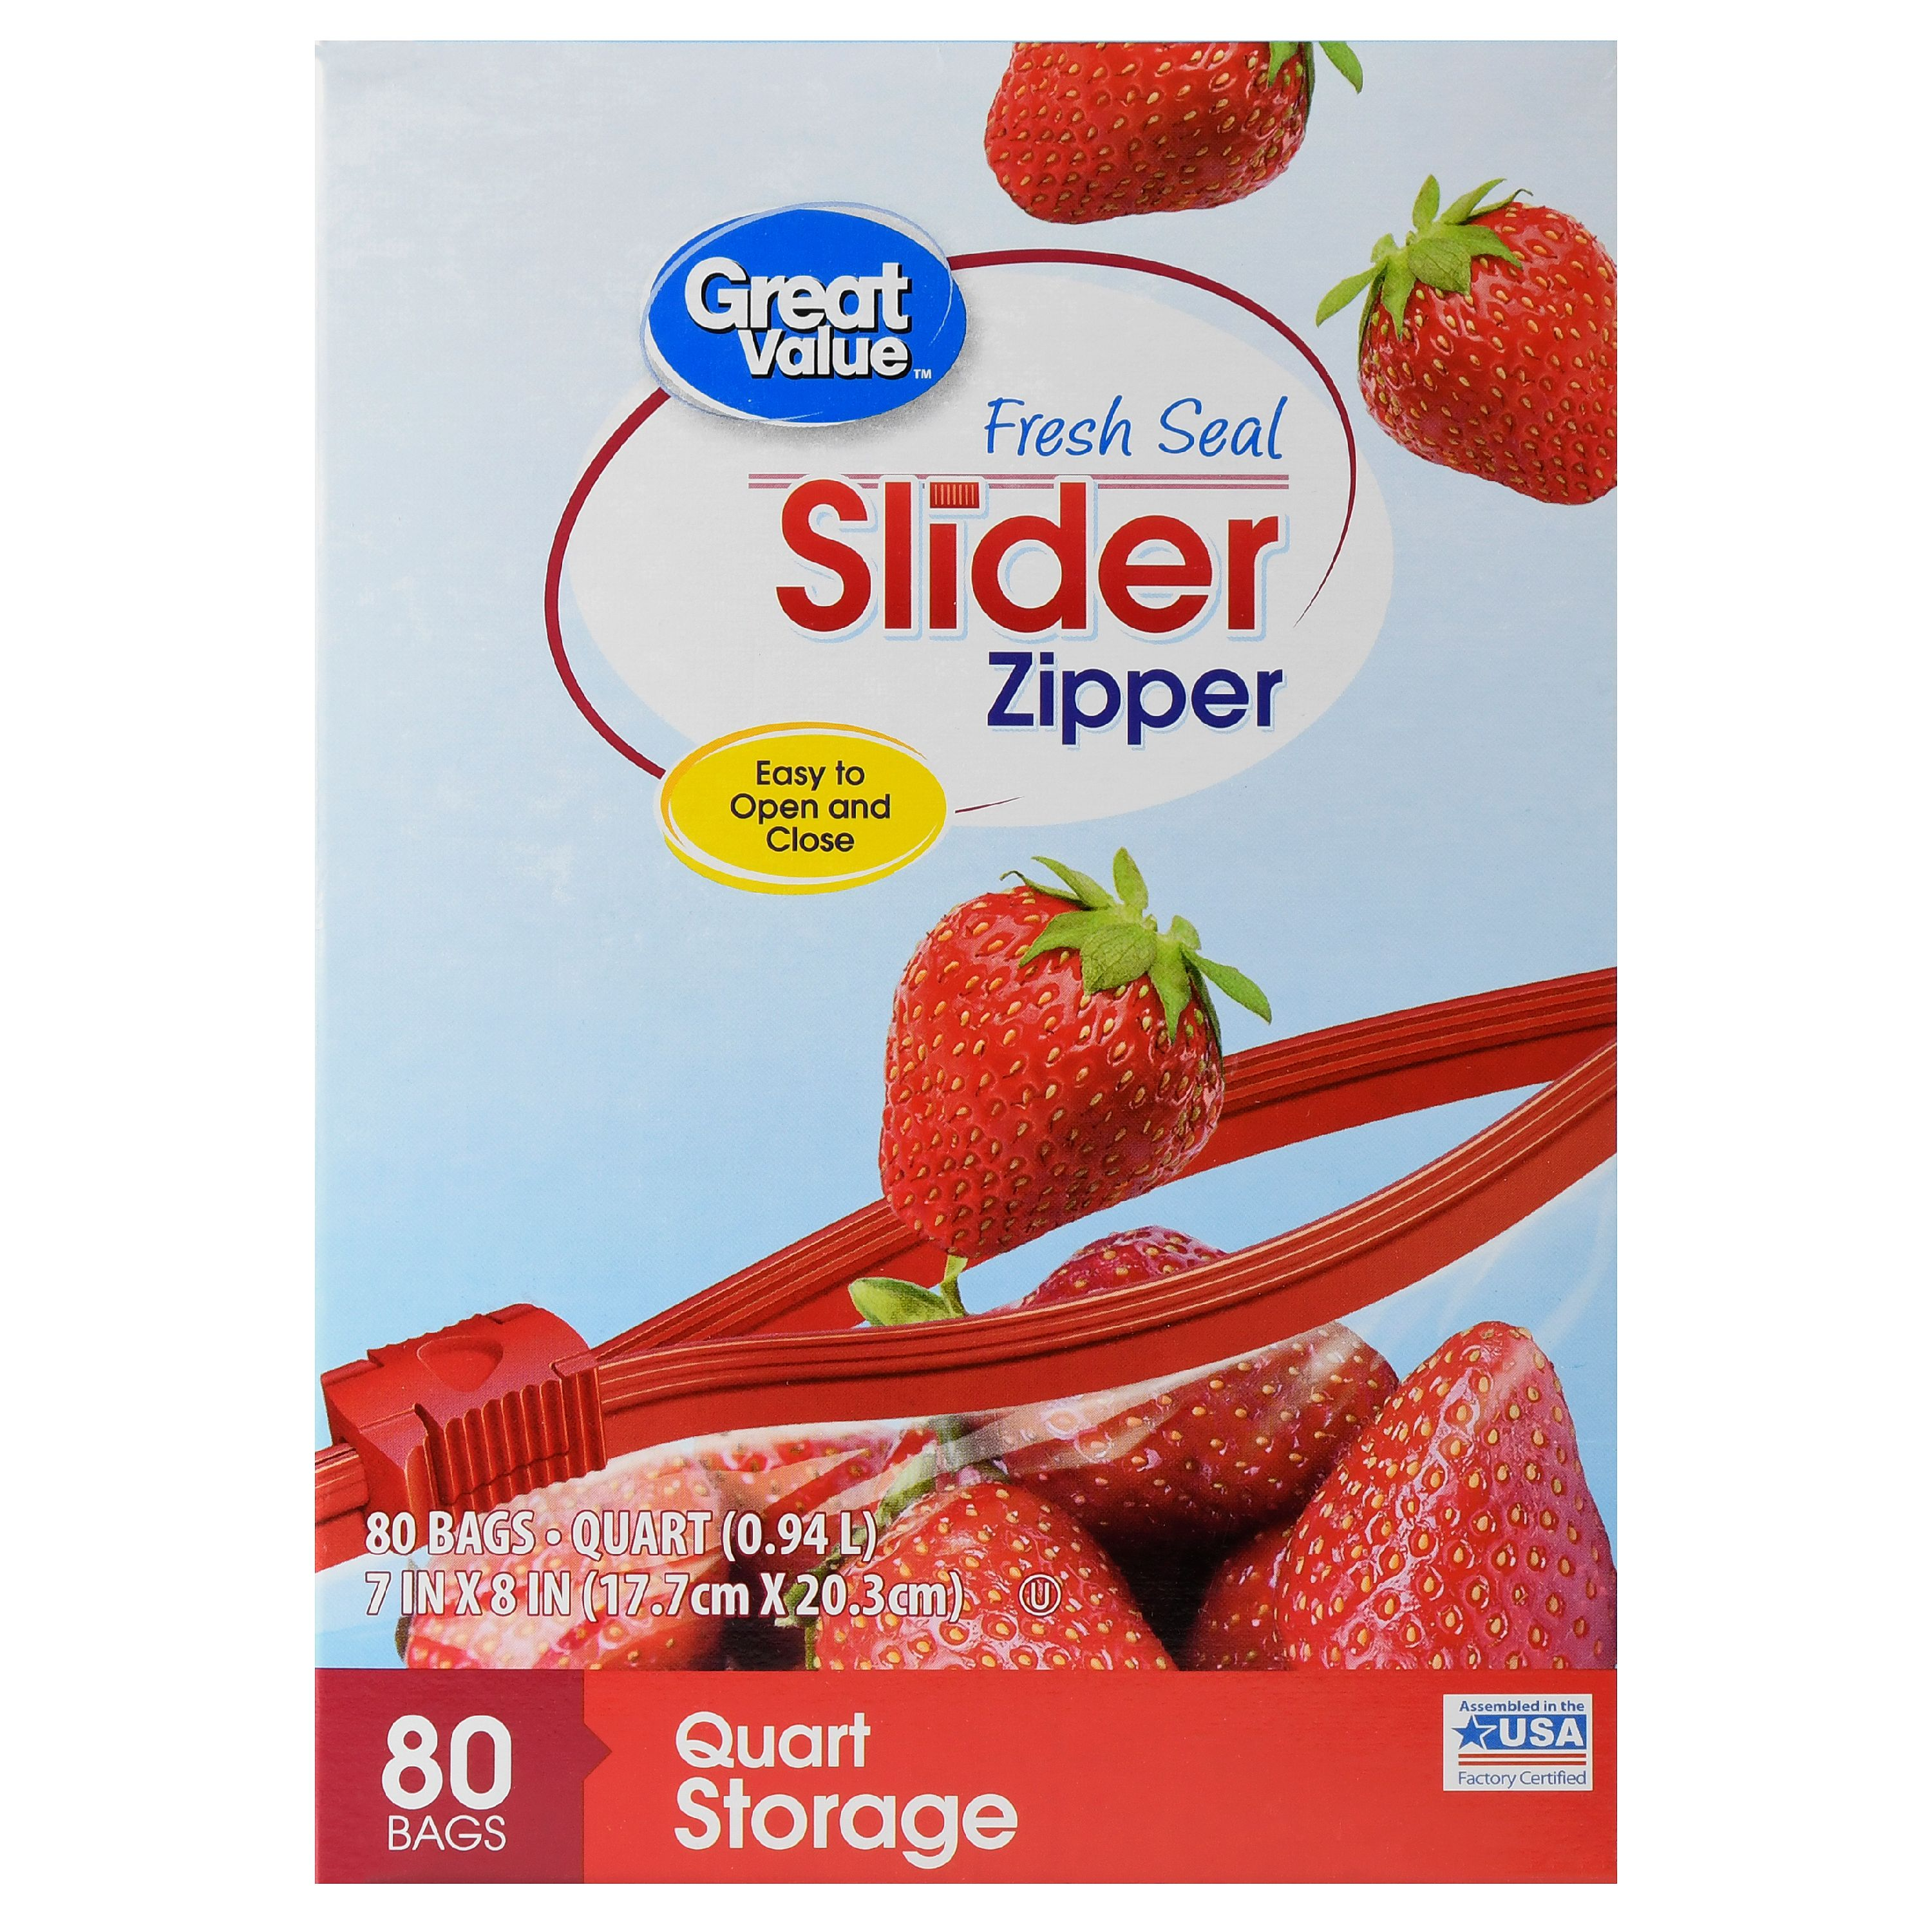 Great Value Quart Storage Slider Zipper Bags Mega Pack, 80 count